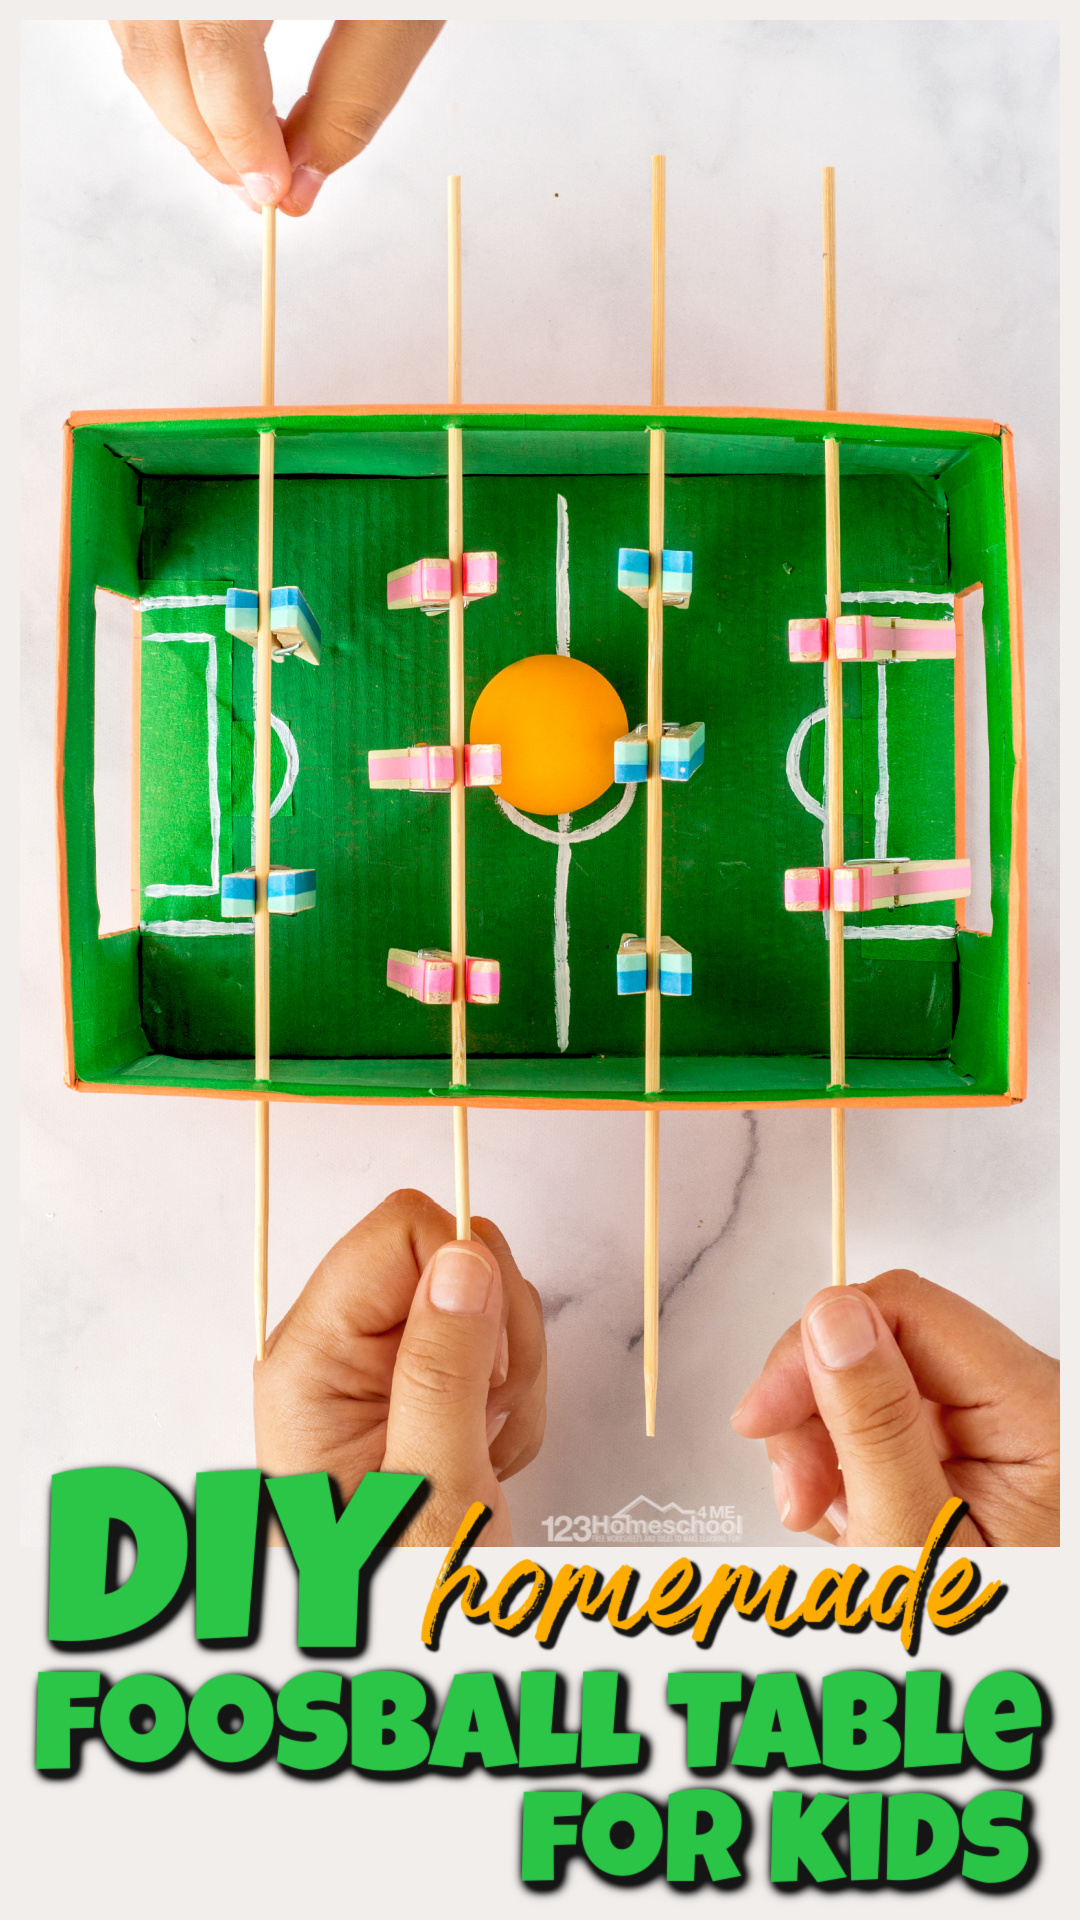 Making aDIY foosball table is a really fun STEM project for kids of all ages to make together and loads of fun to play with too! The diy games for kids is the project for a rainy day or as a summer bucket list idea. Try thishomemade games for kids with preschool, pre-k, kindergarten, first grade, 2nd grade, 3rd grade, and 4th graders too. This EPIC kids activity is sure to be a hit with your kids.